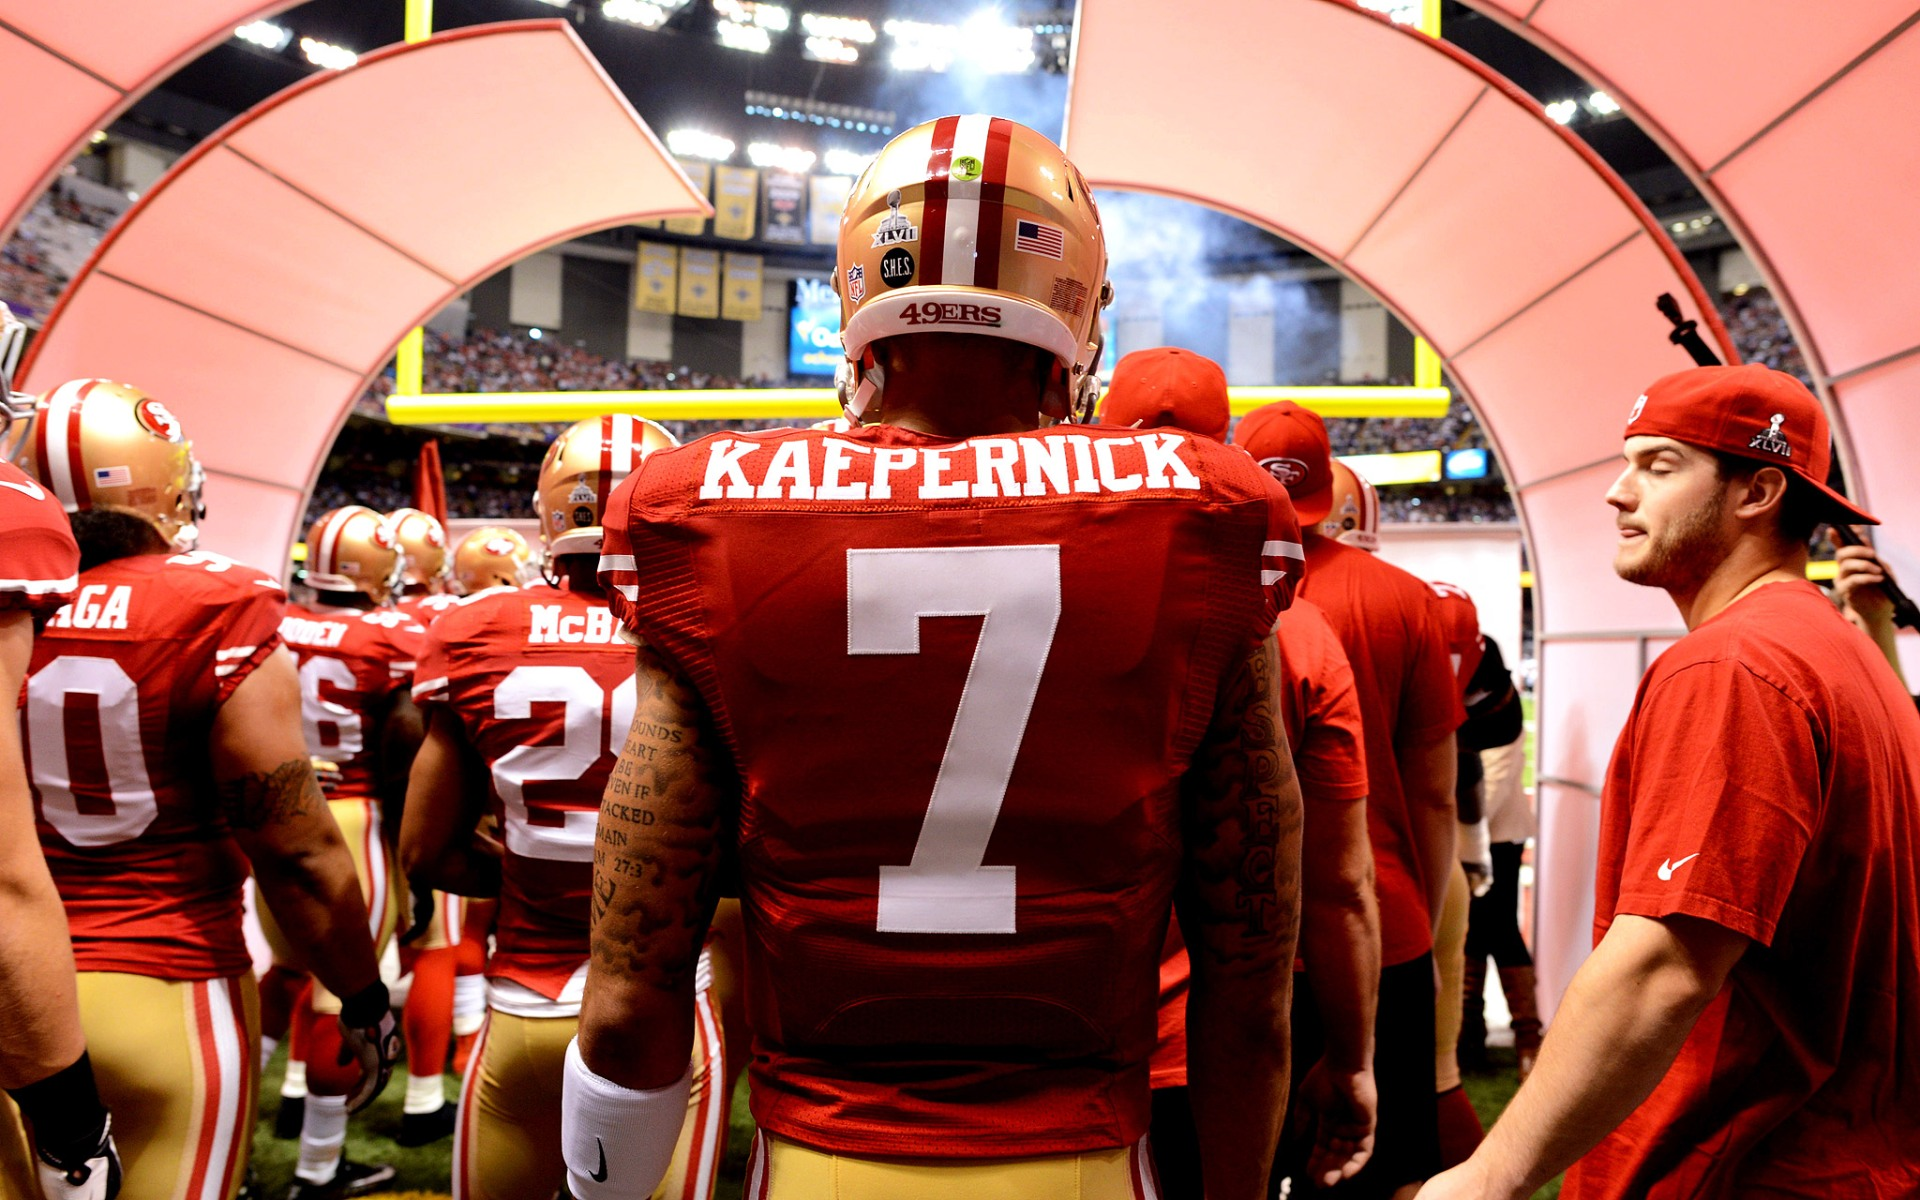 Colin Kaepernick wallpaper 1920x1200 62098 1920x1200